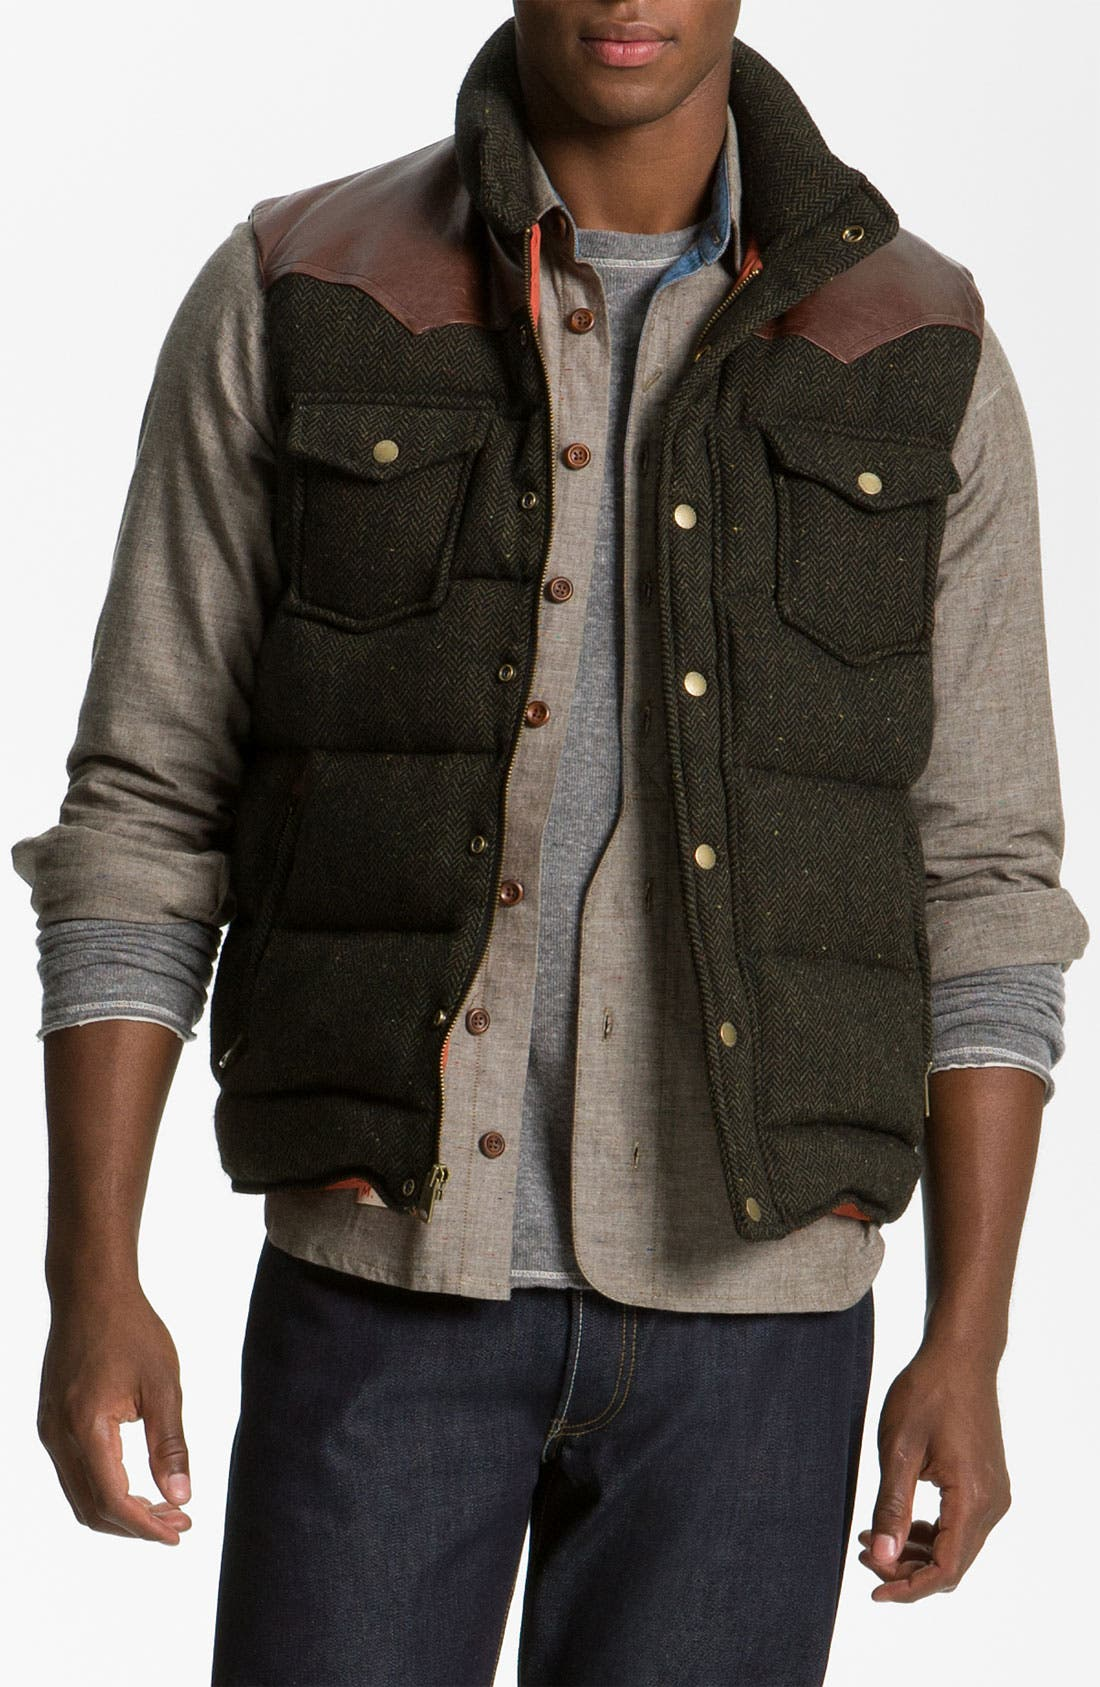 Alternate Image 1 Selected - Penfield 'Stapleton' Herringbone Tweed Down Vest